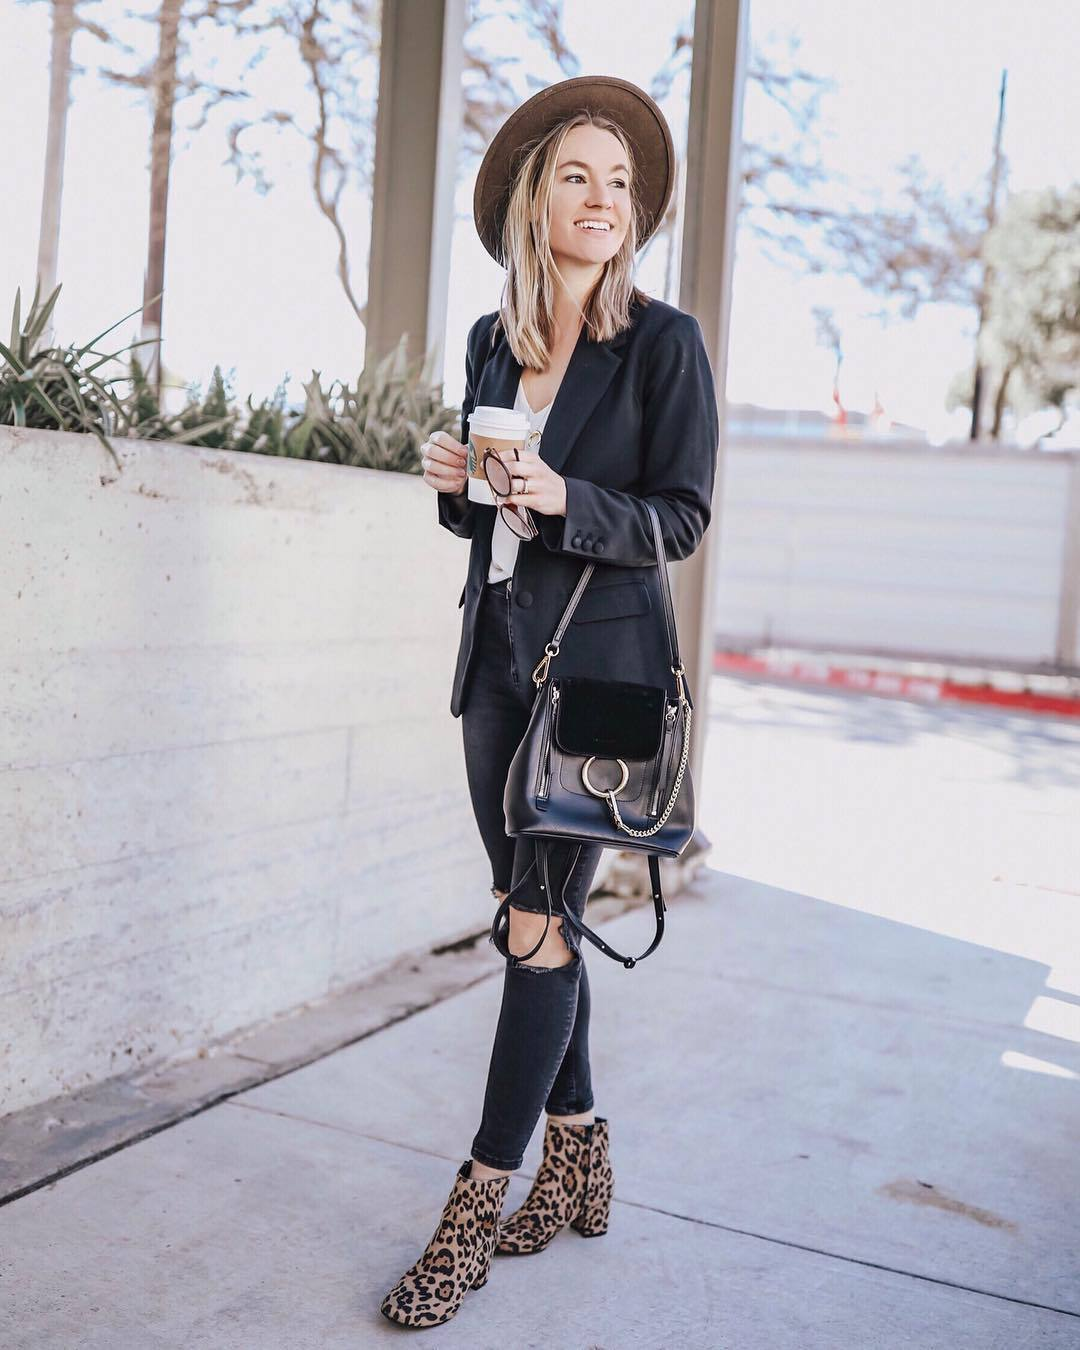 bag black bag ankle boots leopard print heel boots black skinny jeans black ripped jeans high waisted jeans black blazer white top hat